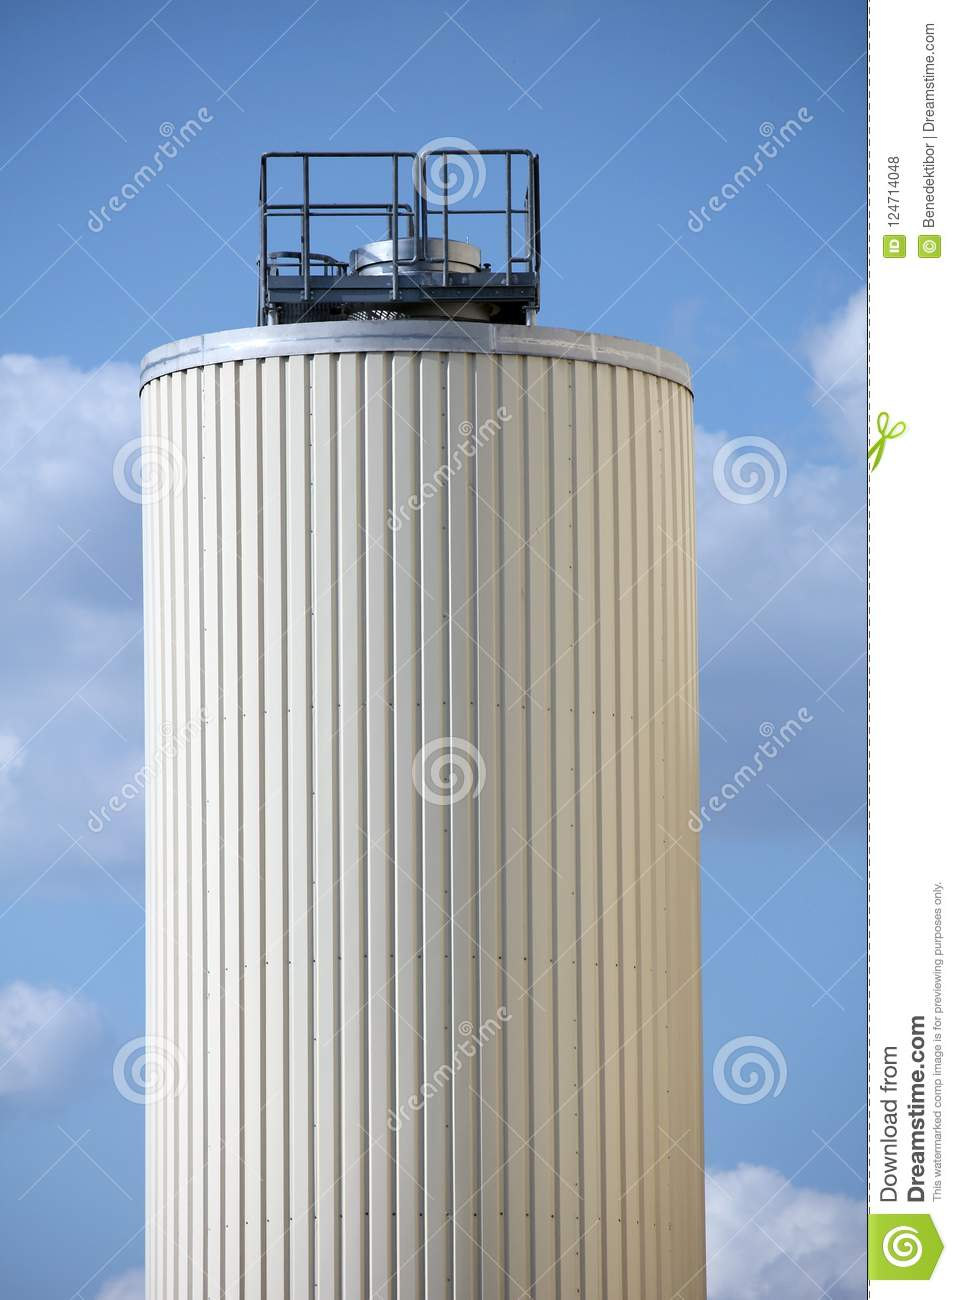 Brewery silo against blue sky